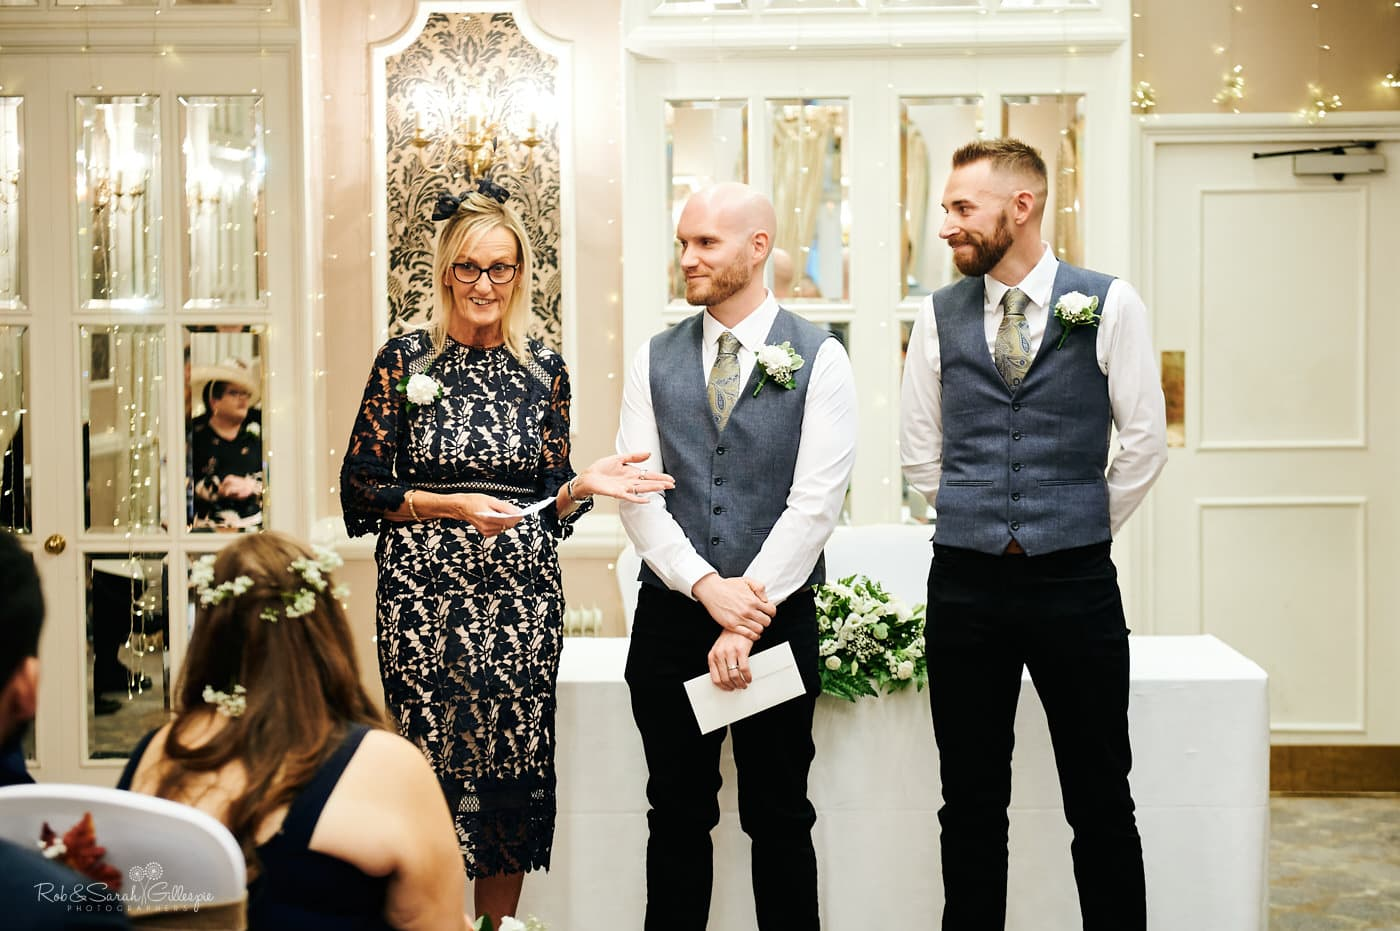 Groom's mum gives reading during wedding ceremony